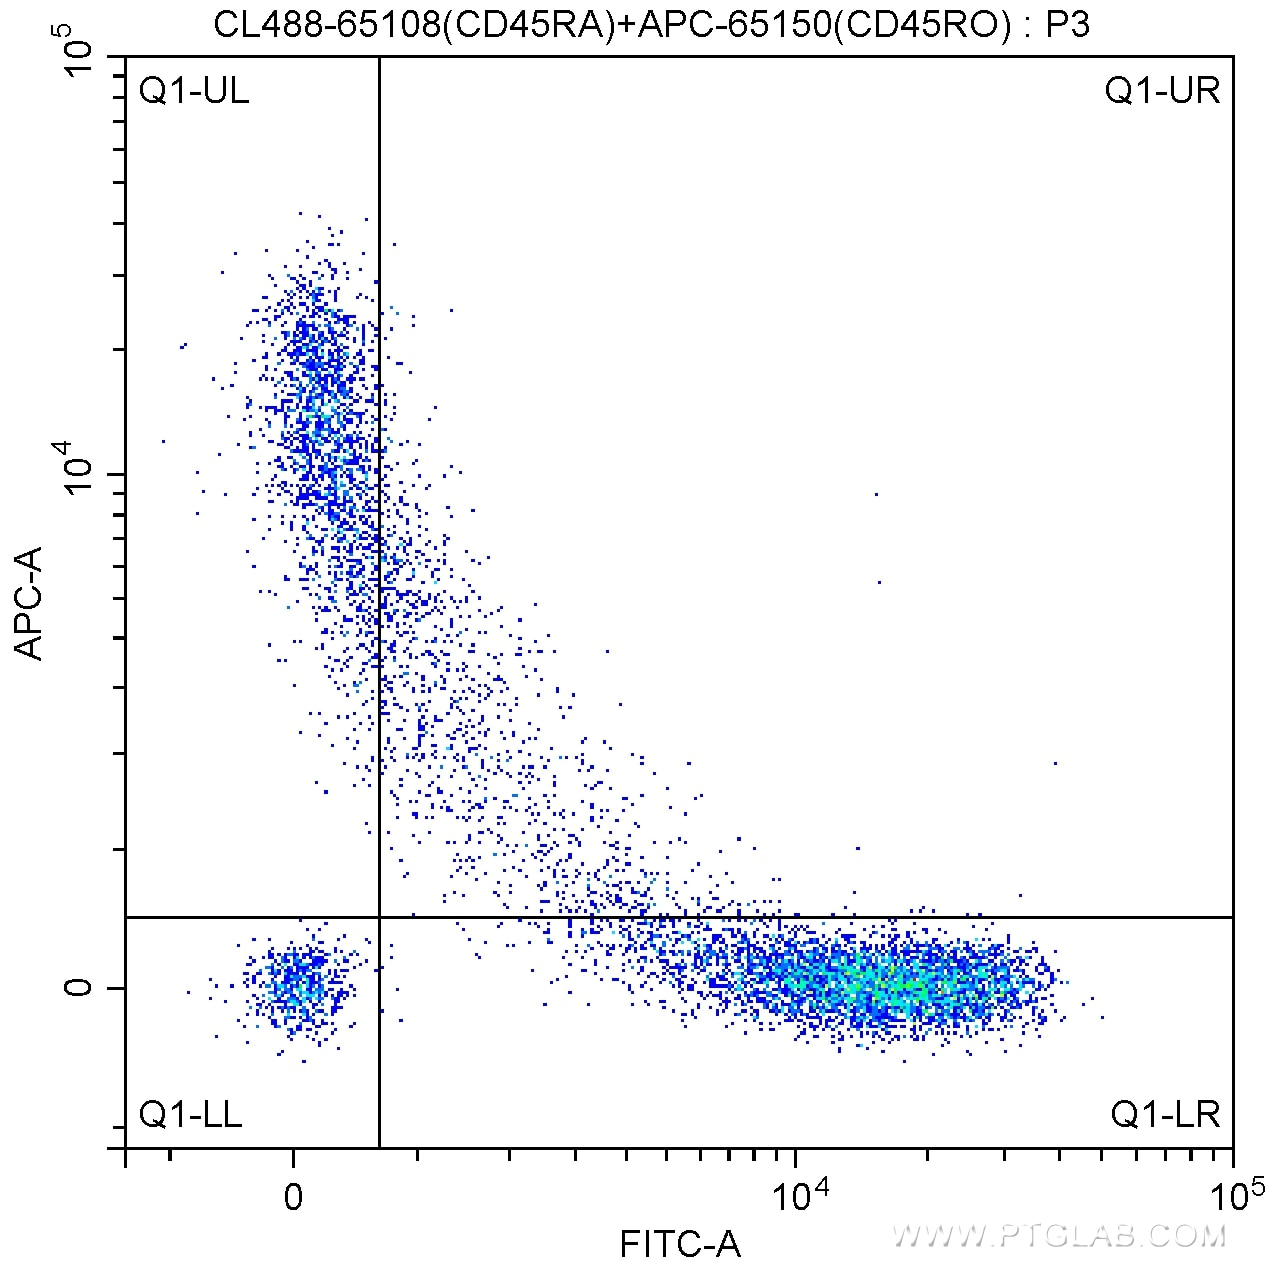 FC experiment of human peripheral blood lymphocytes using CL488-65108